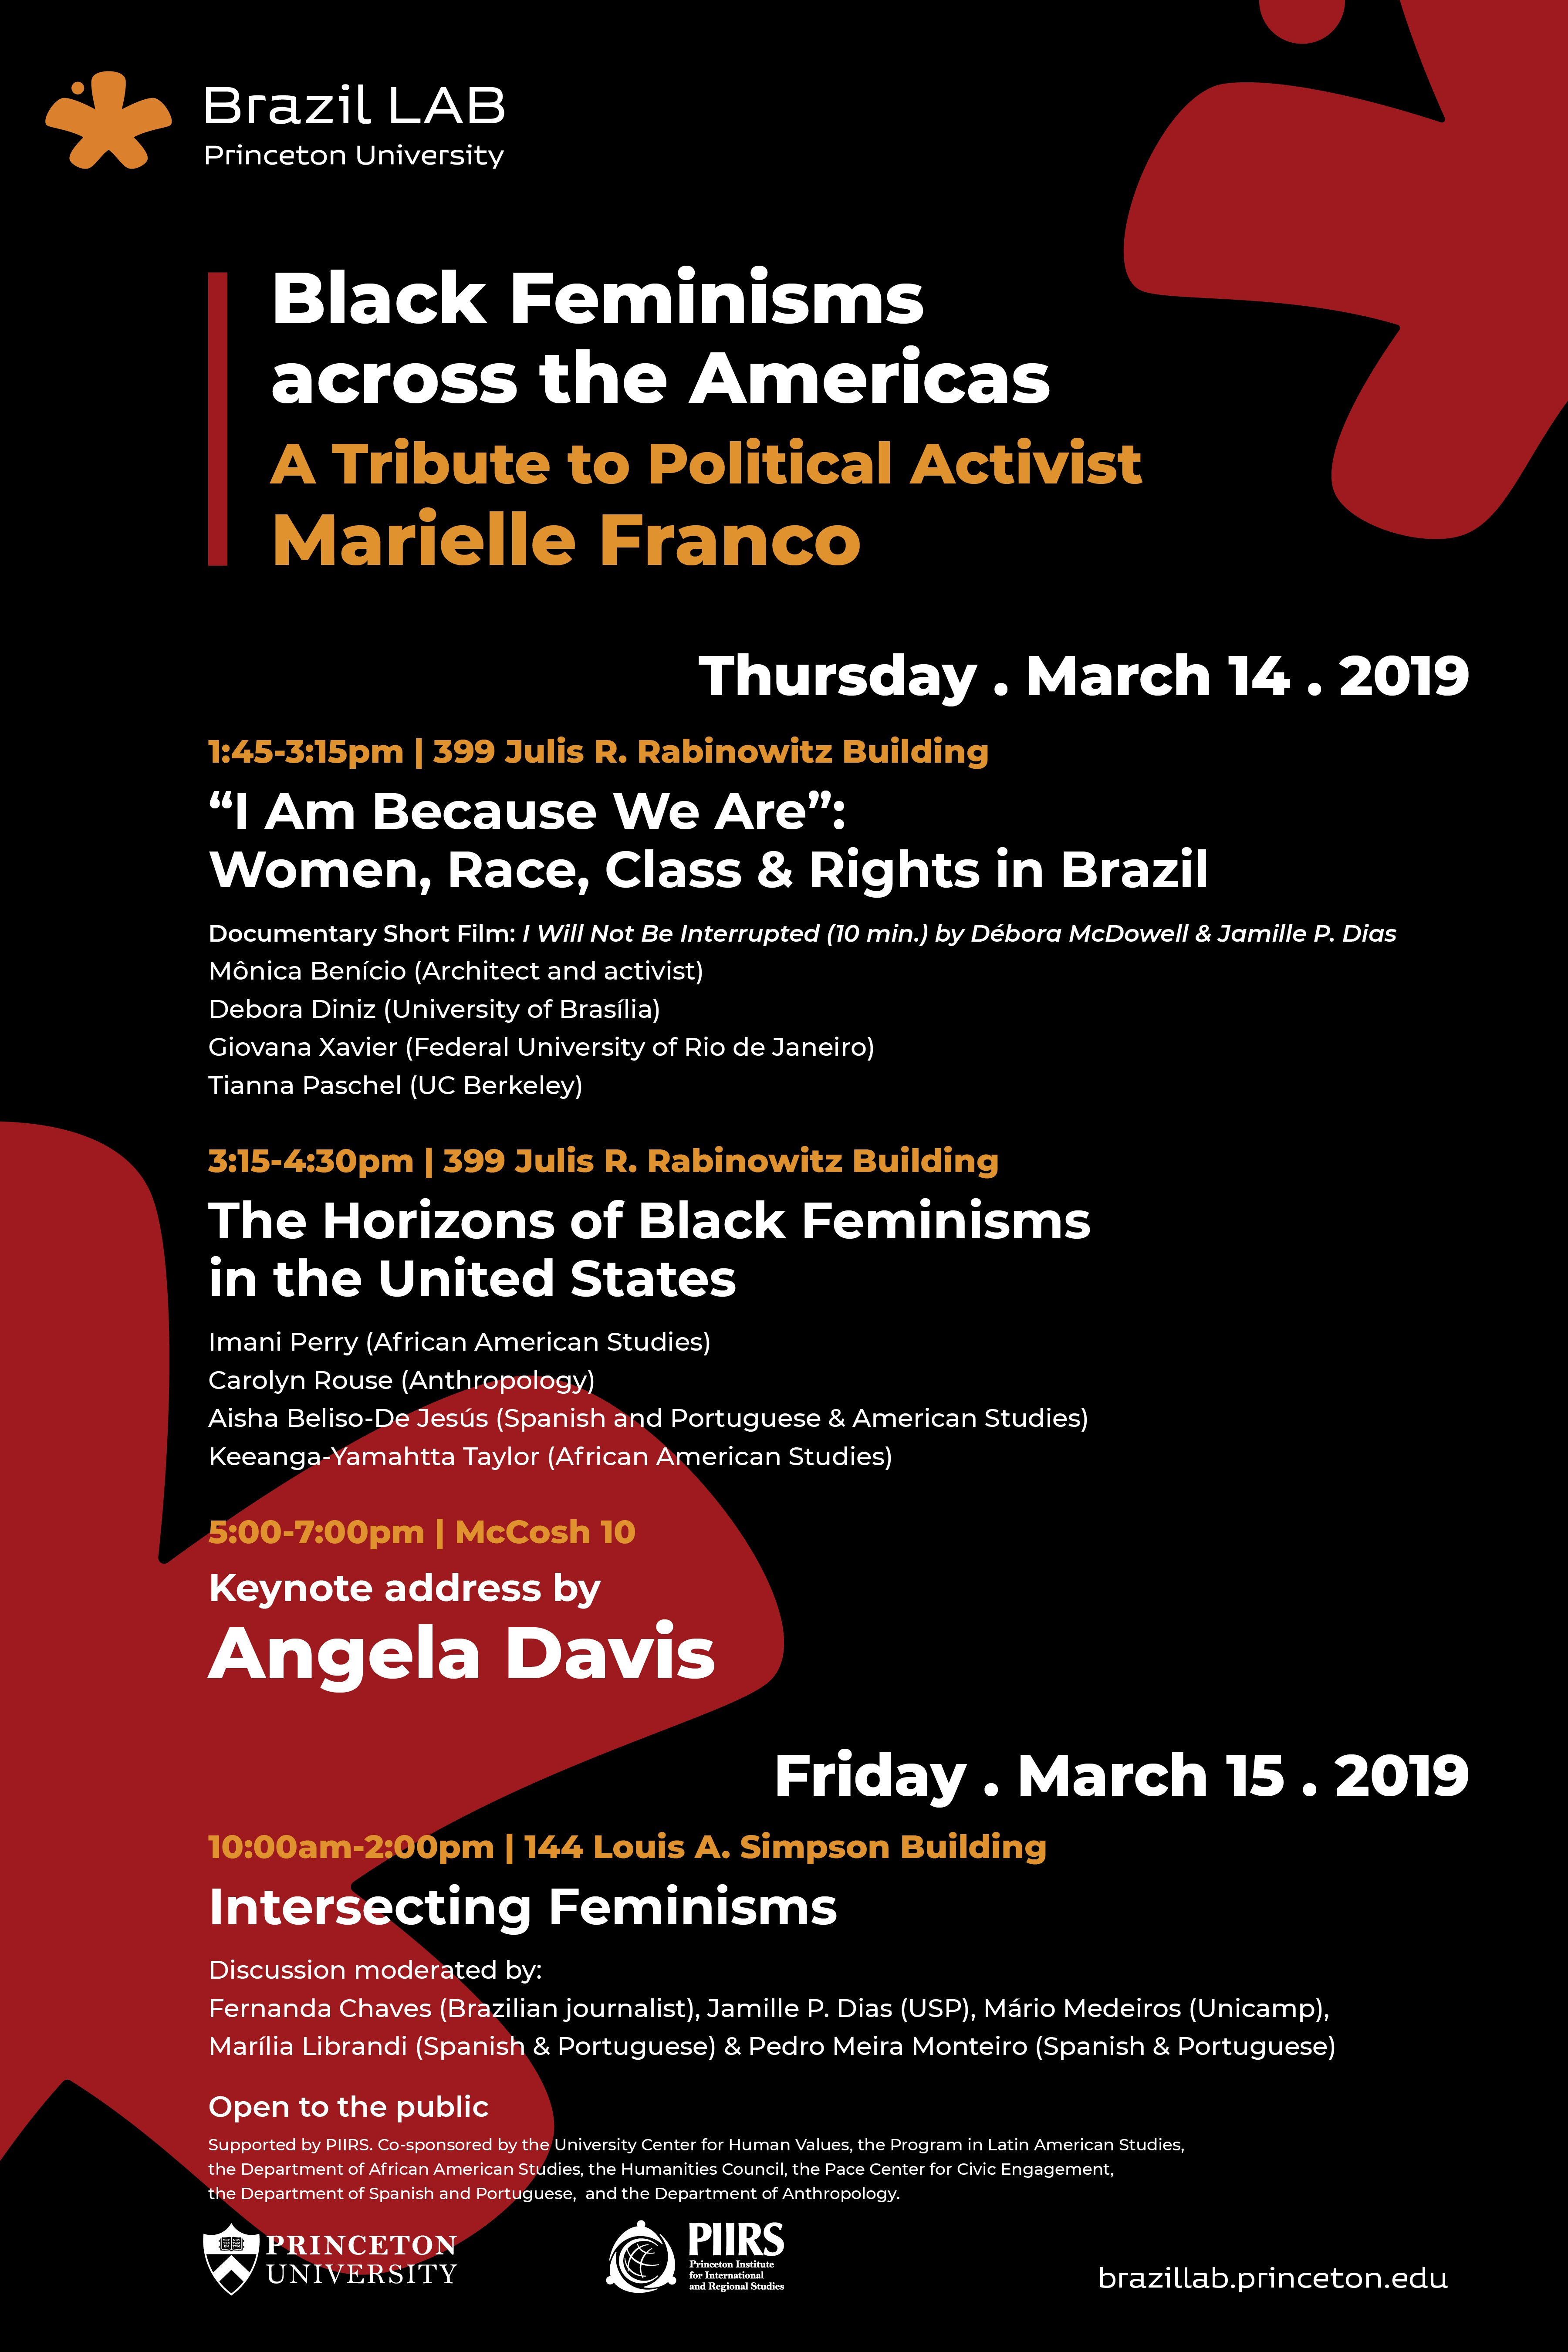 Black Feminisms across the Americas: A Tribute to Political Activist